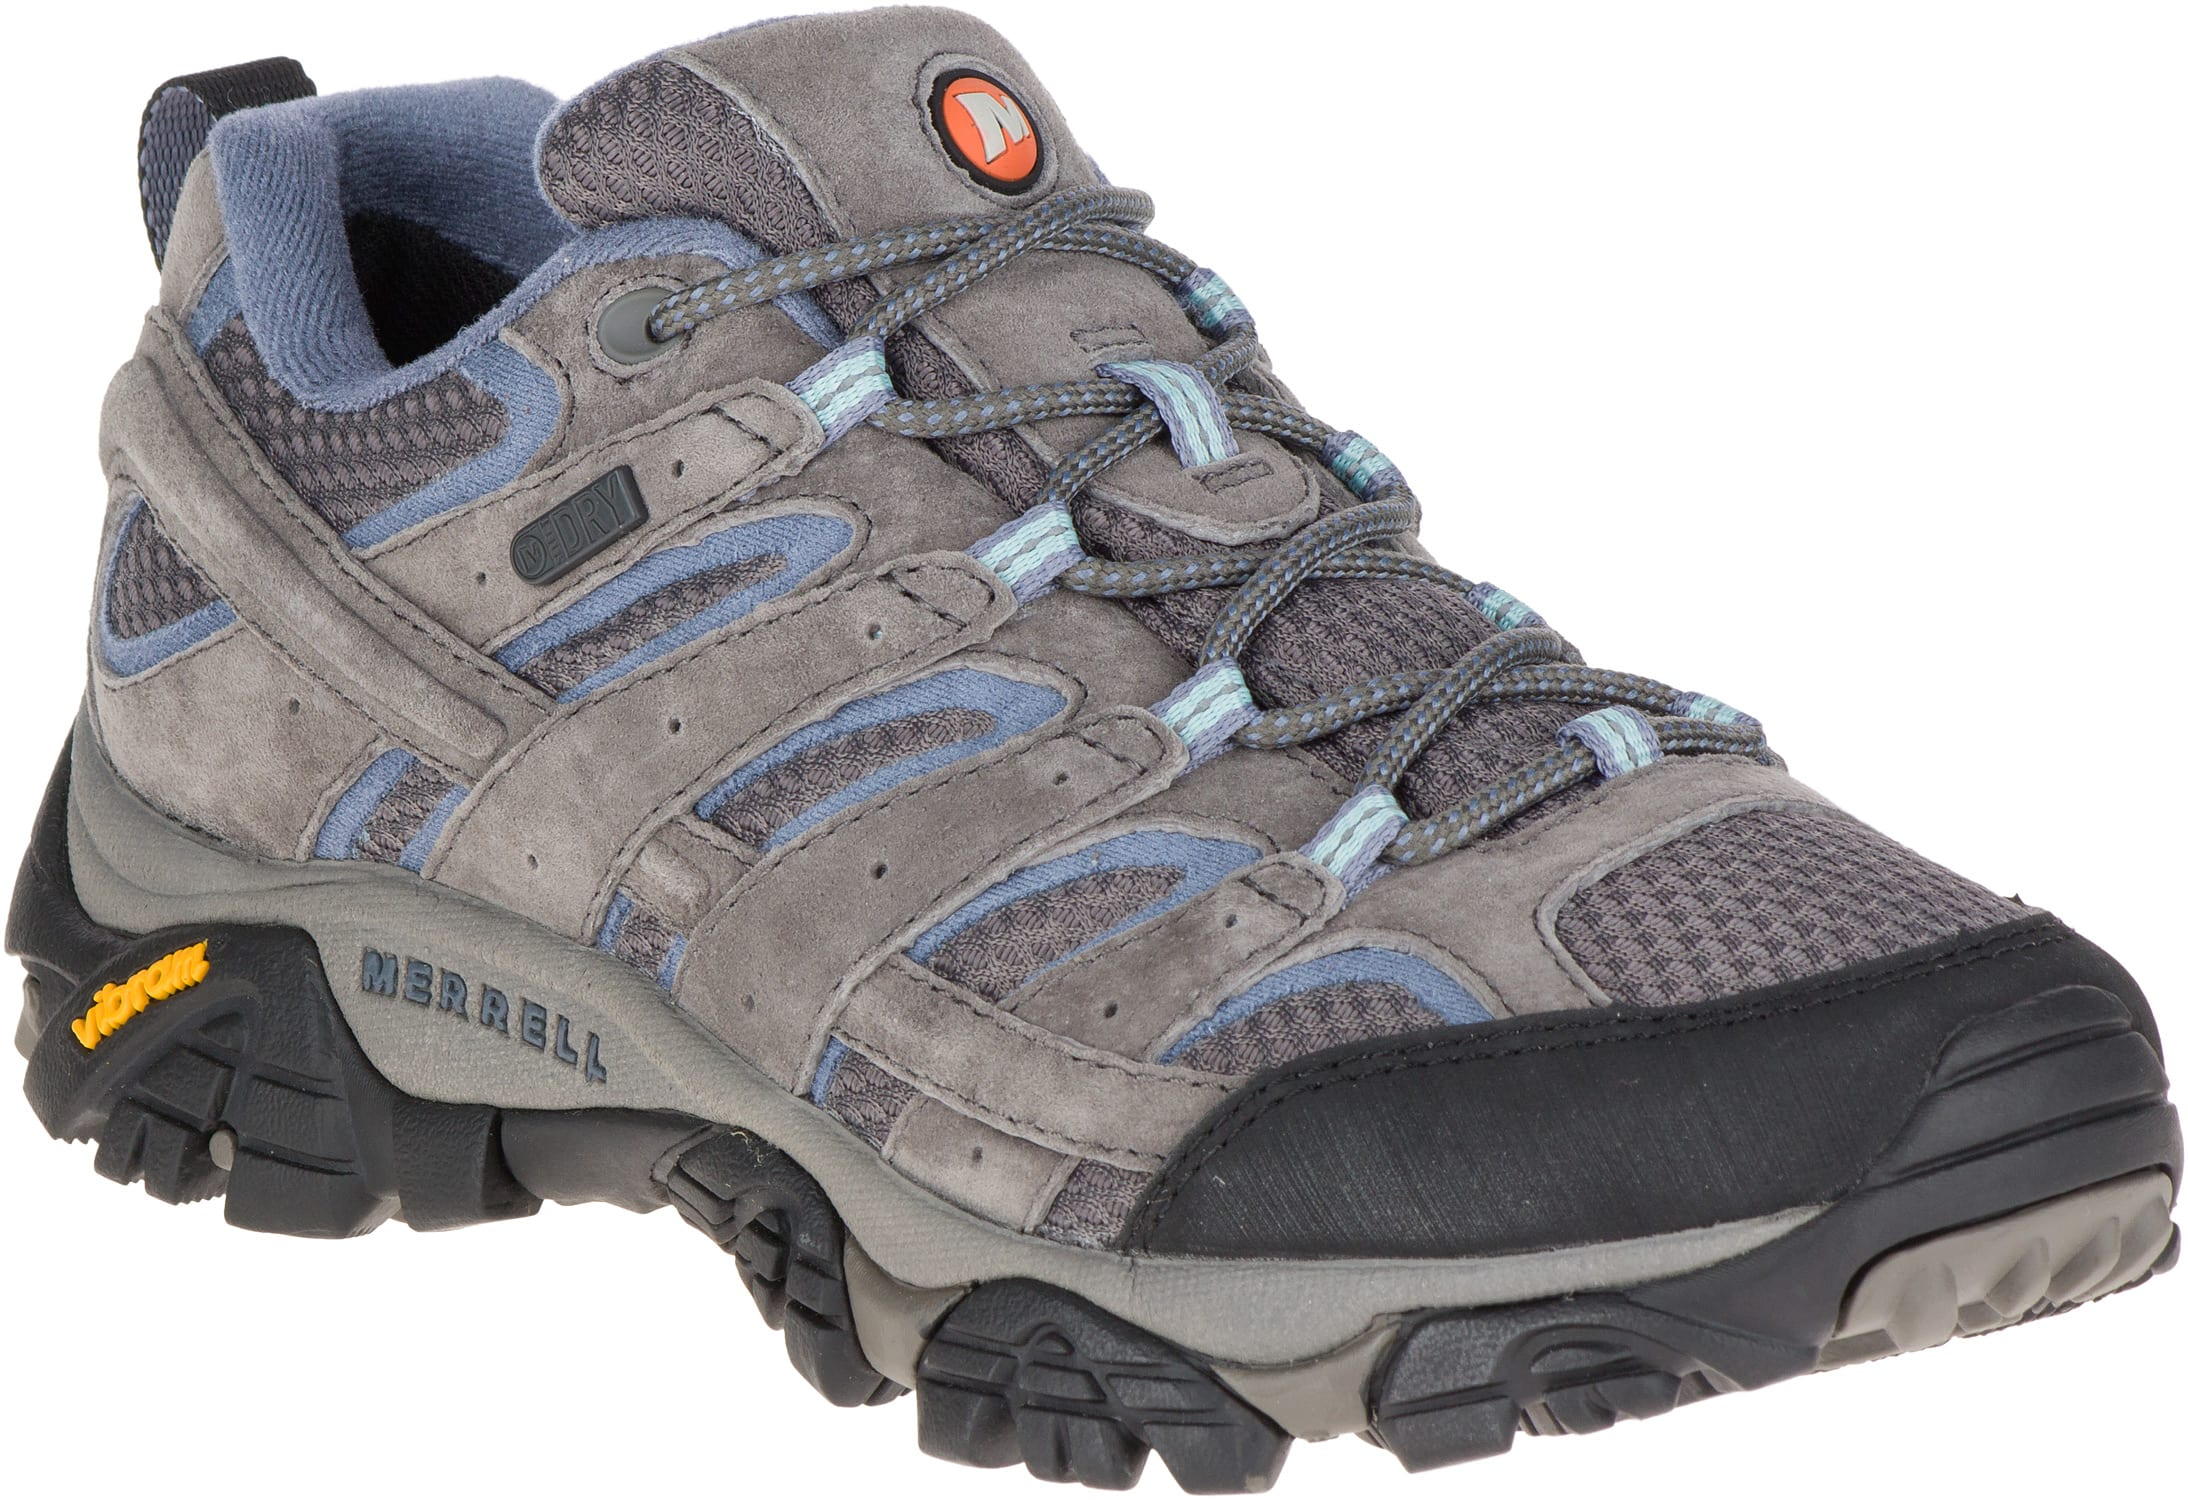 Merrell Moab 2 Waterproof Hiking Shoes Womens